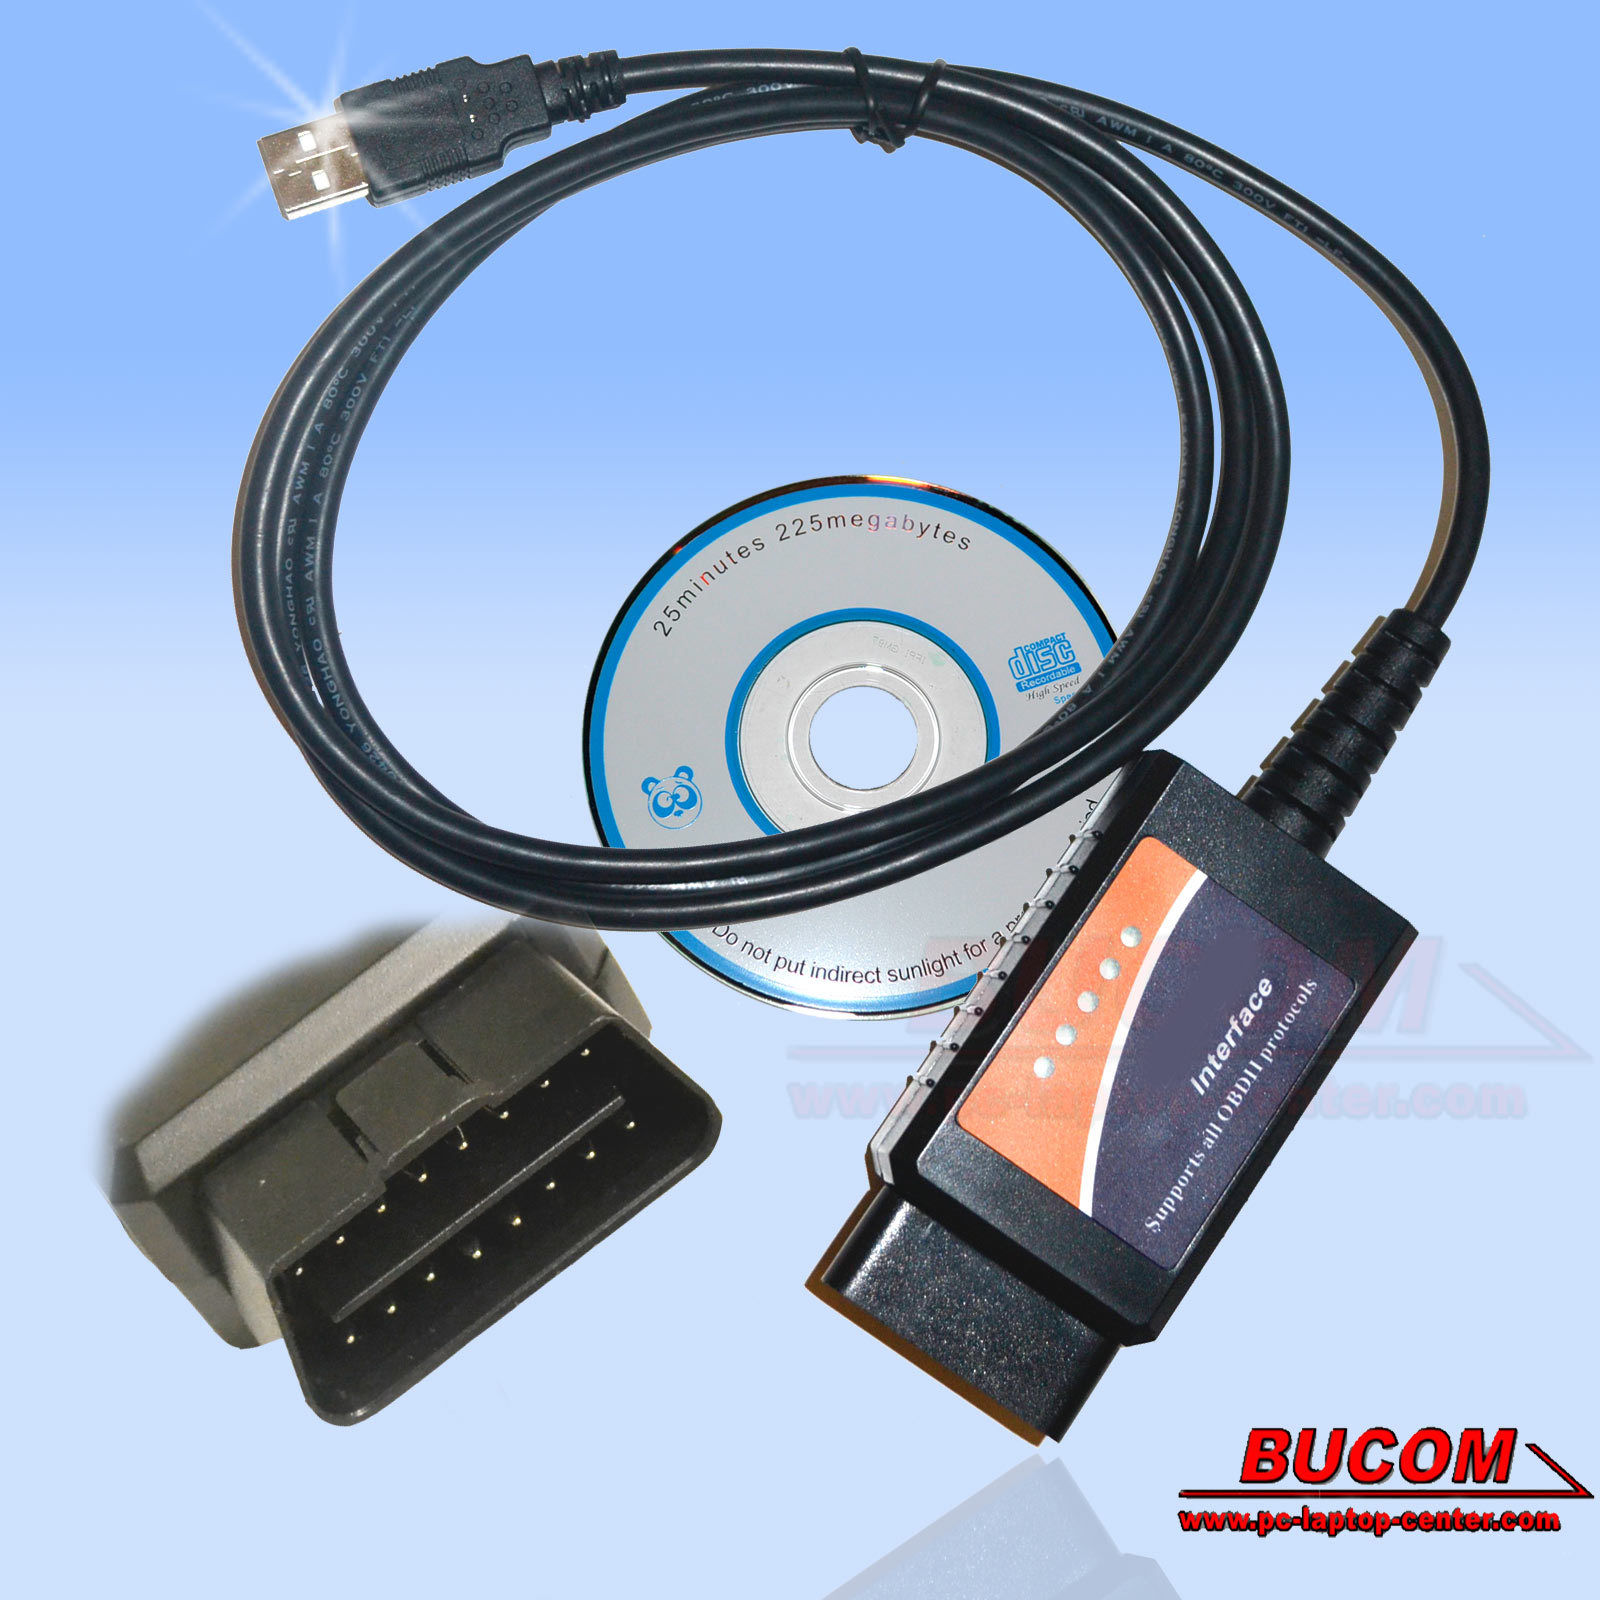 Kfz Diagnose Gert Audi Bmw Mercedes Vw Fiat Nissan Wiring Usb Harness Connection Opel Mazda Honda Obdii Obd2